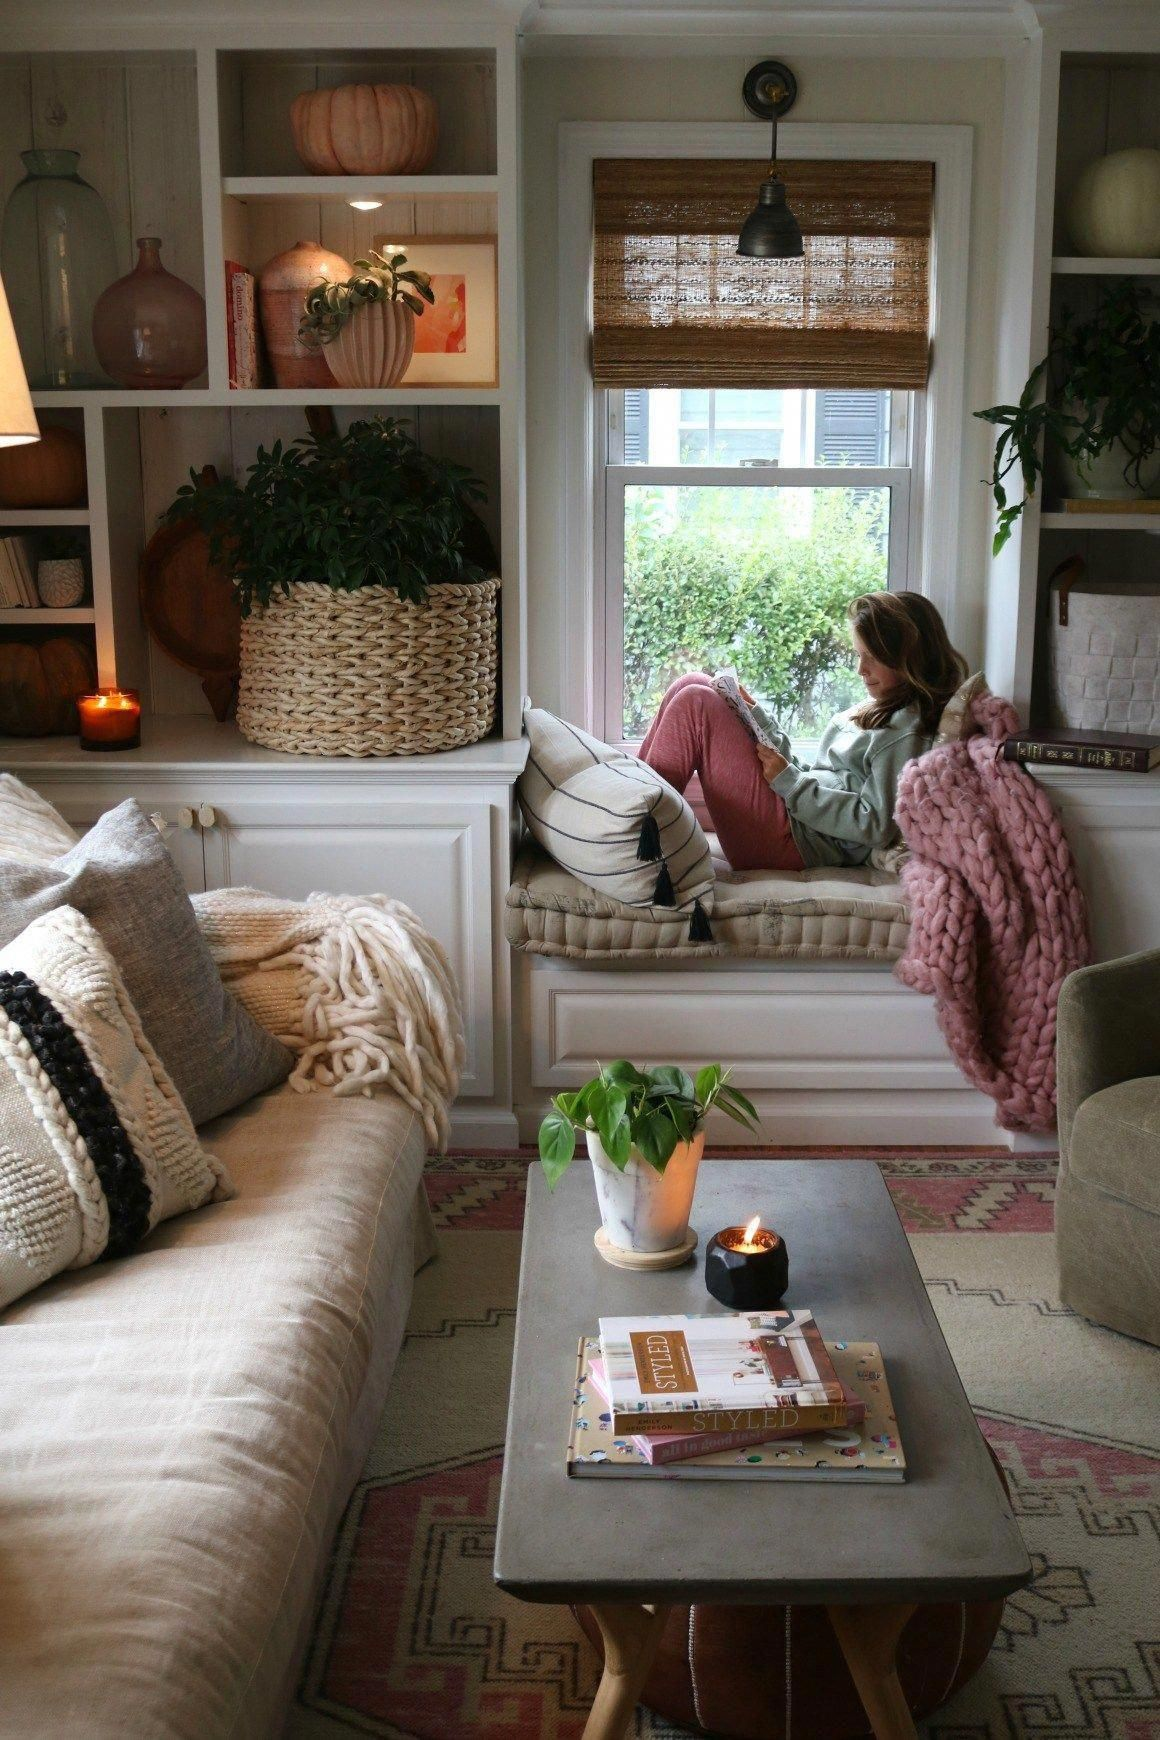 Easy fall decorating ideas in the living room, especially tips for styling your shelves with house plants, candles, pumpkins, and a gorgeous autumn colors! #nestingwithgrace #fallhome #homeaccessories #homeInterior #LivingRoomWallDecor